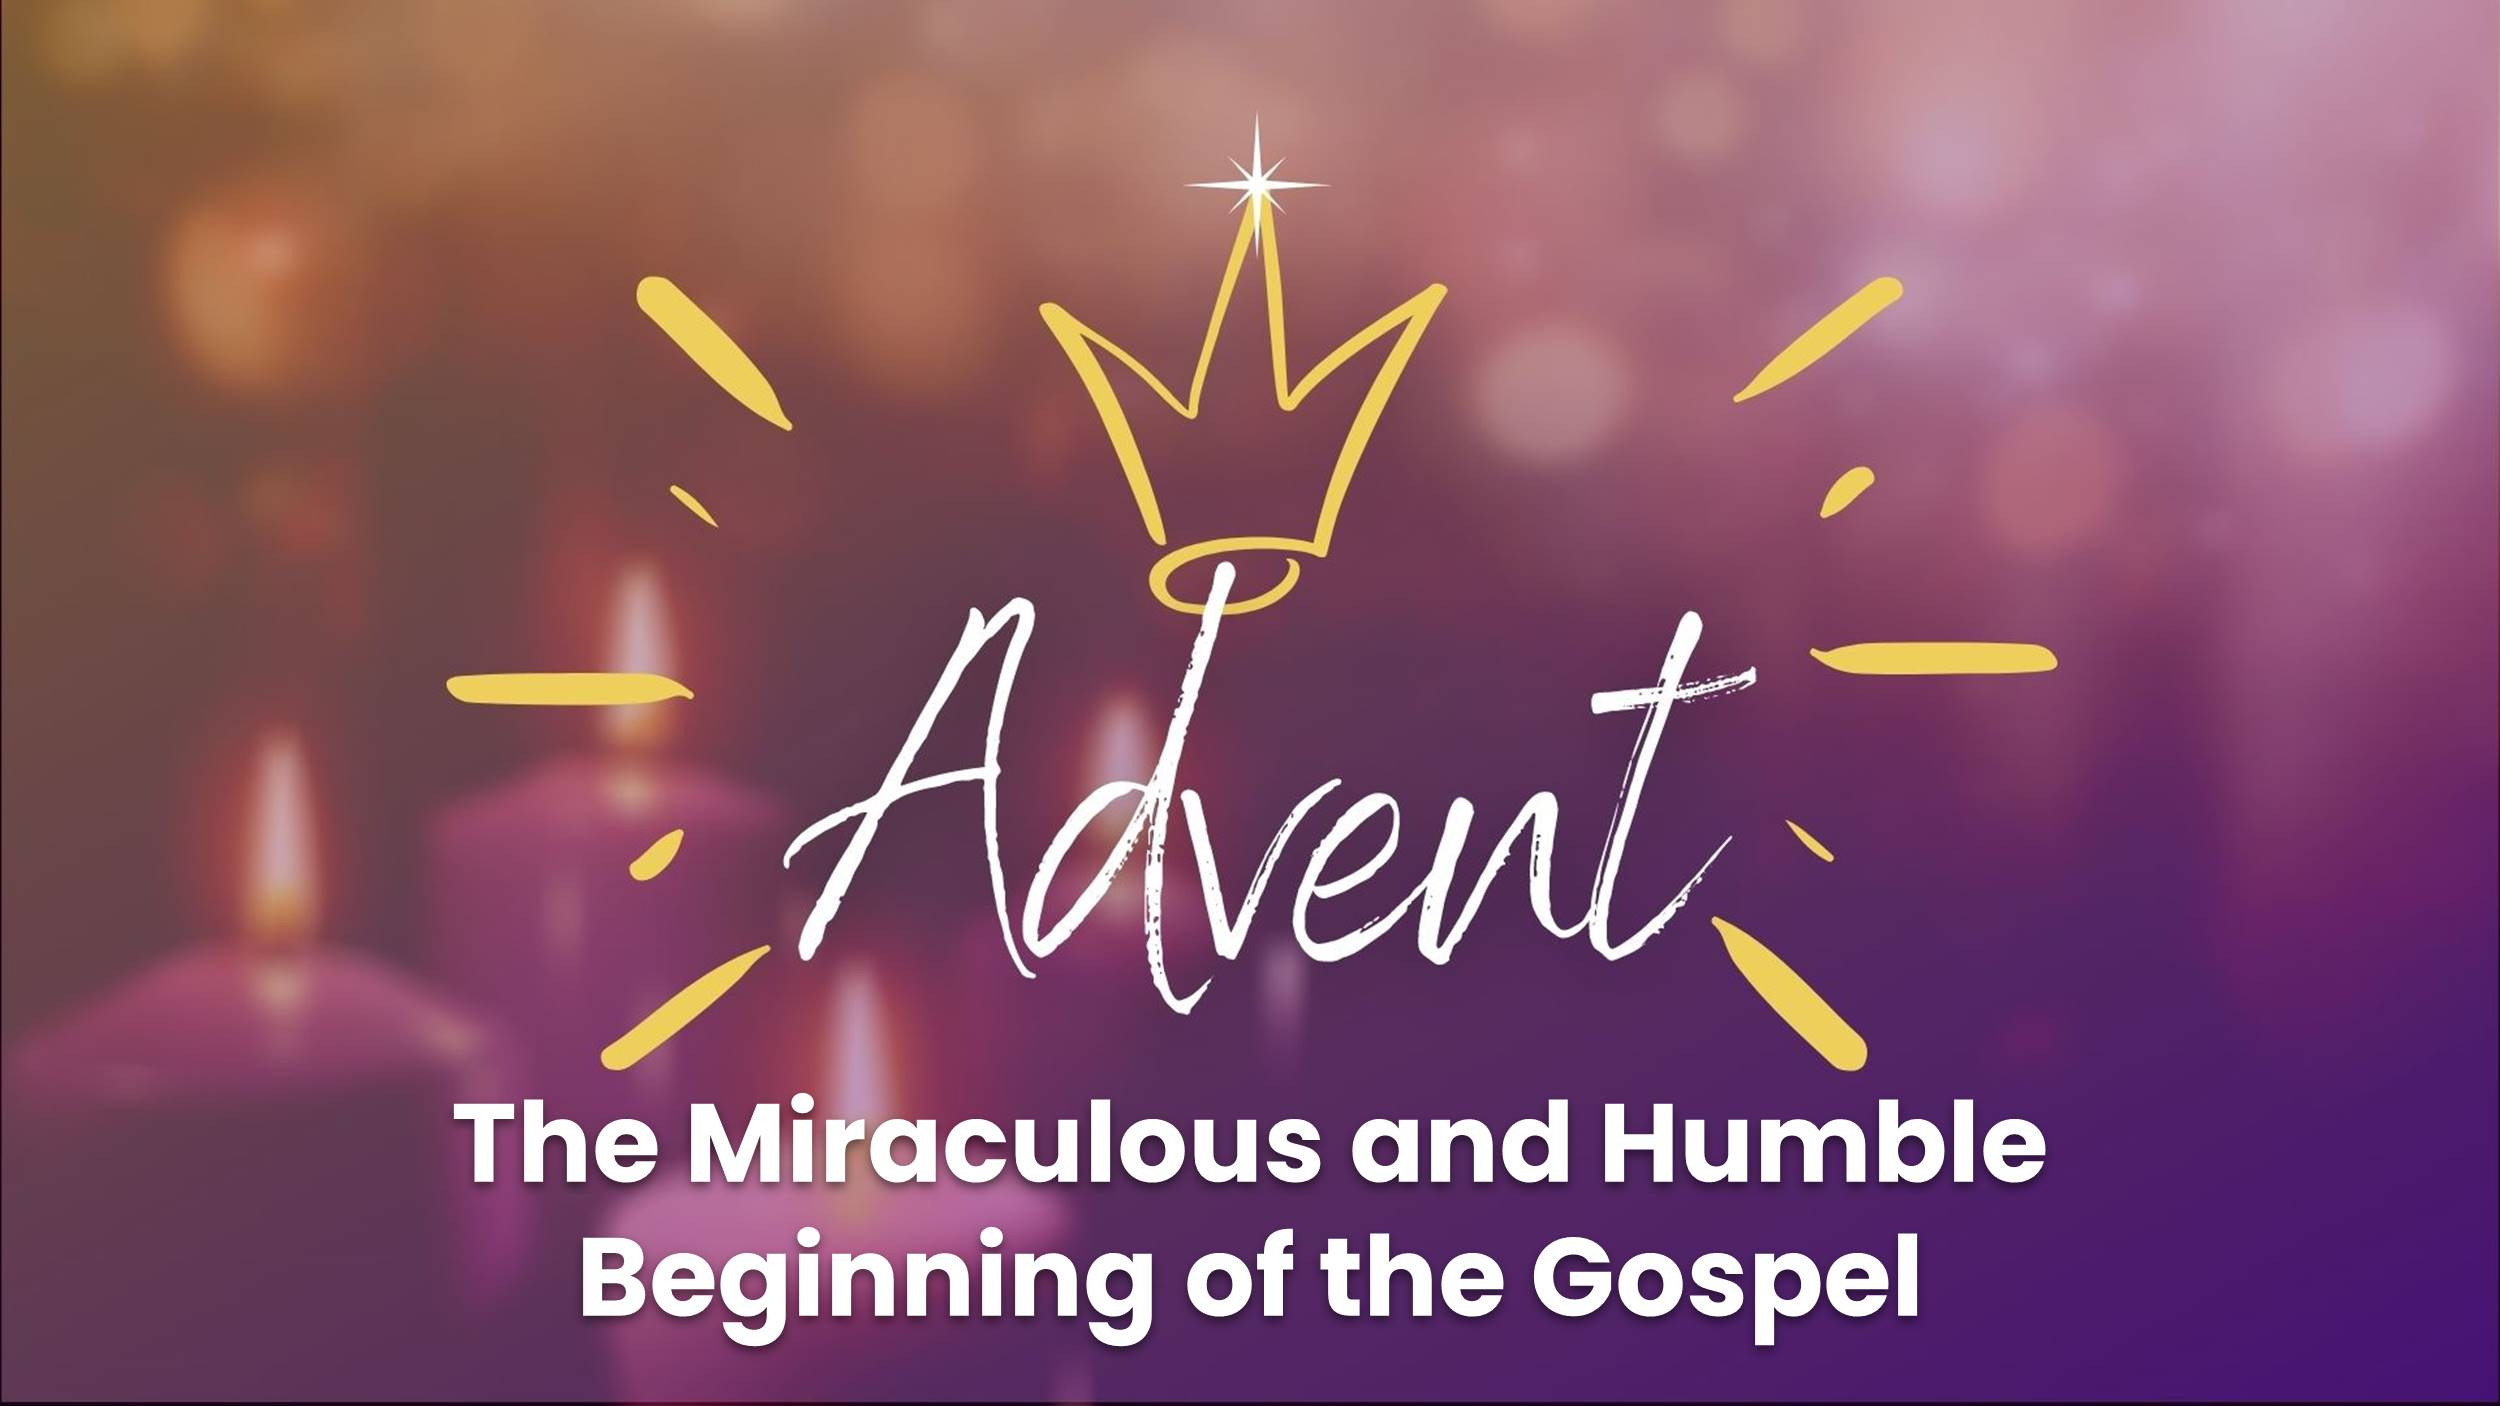 The Miraculous and Humble Beginning of the Gospel